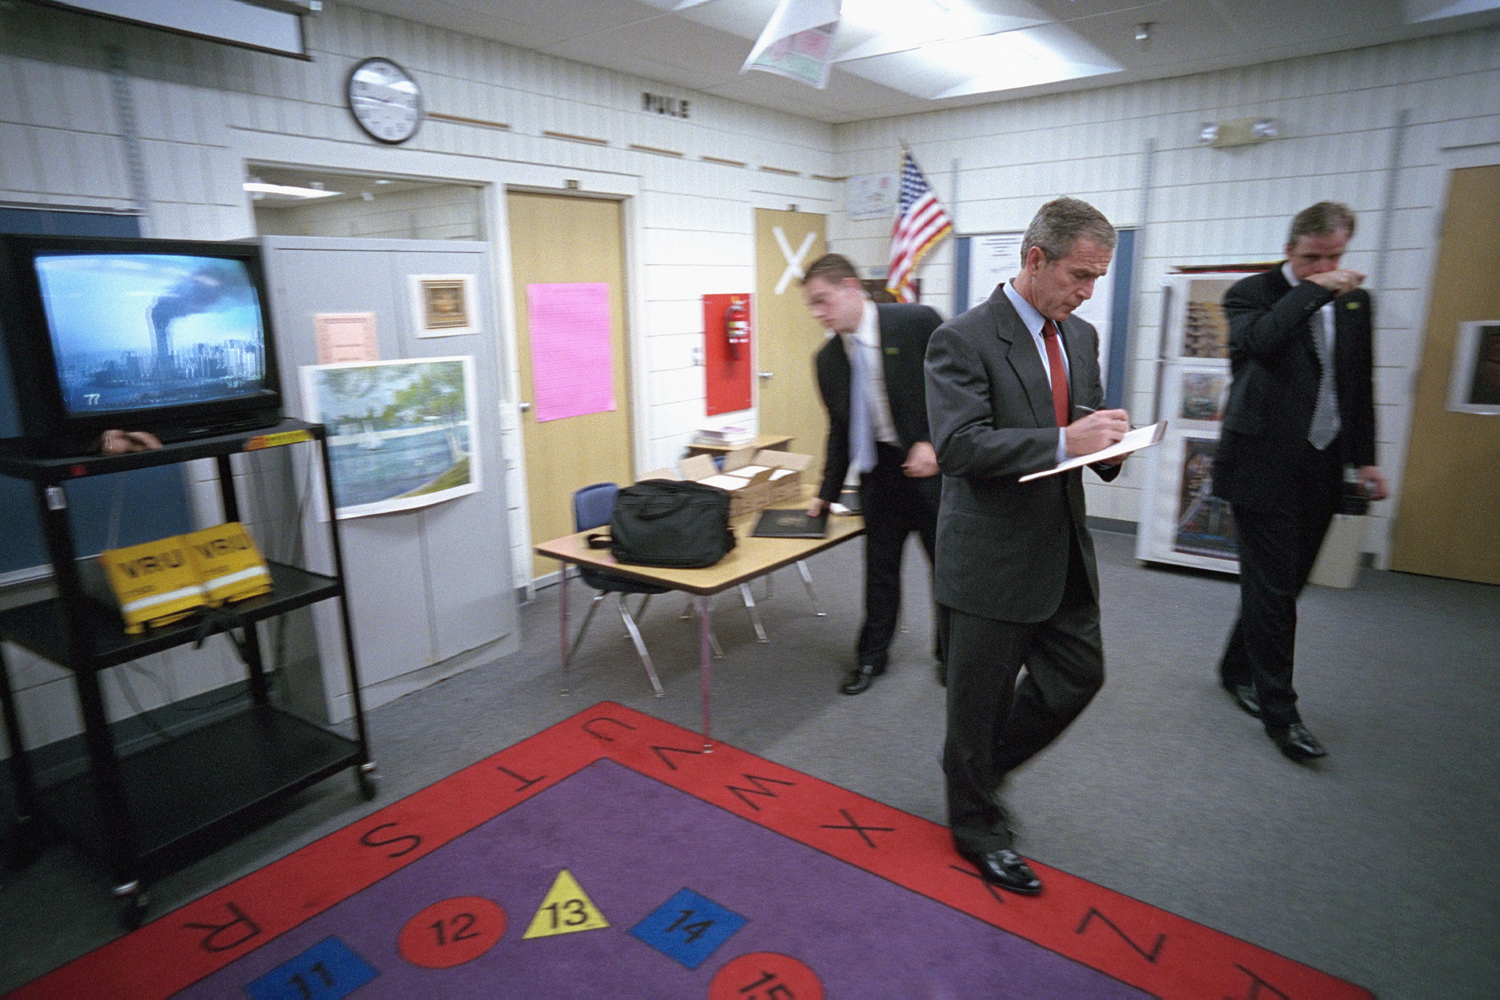 Sept. 11, 2001. From a classroom at Emma Booker Elementary School, President Bush takes notes as he listens to news coverage of the World Trade Center terrorist attacks.